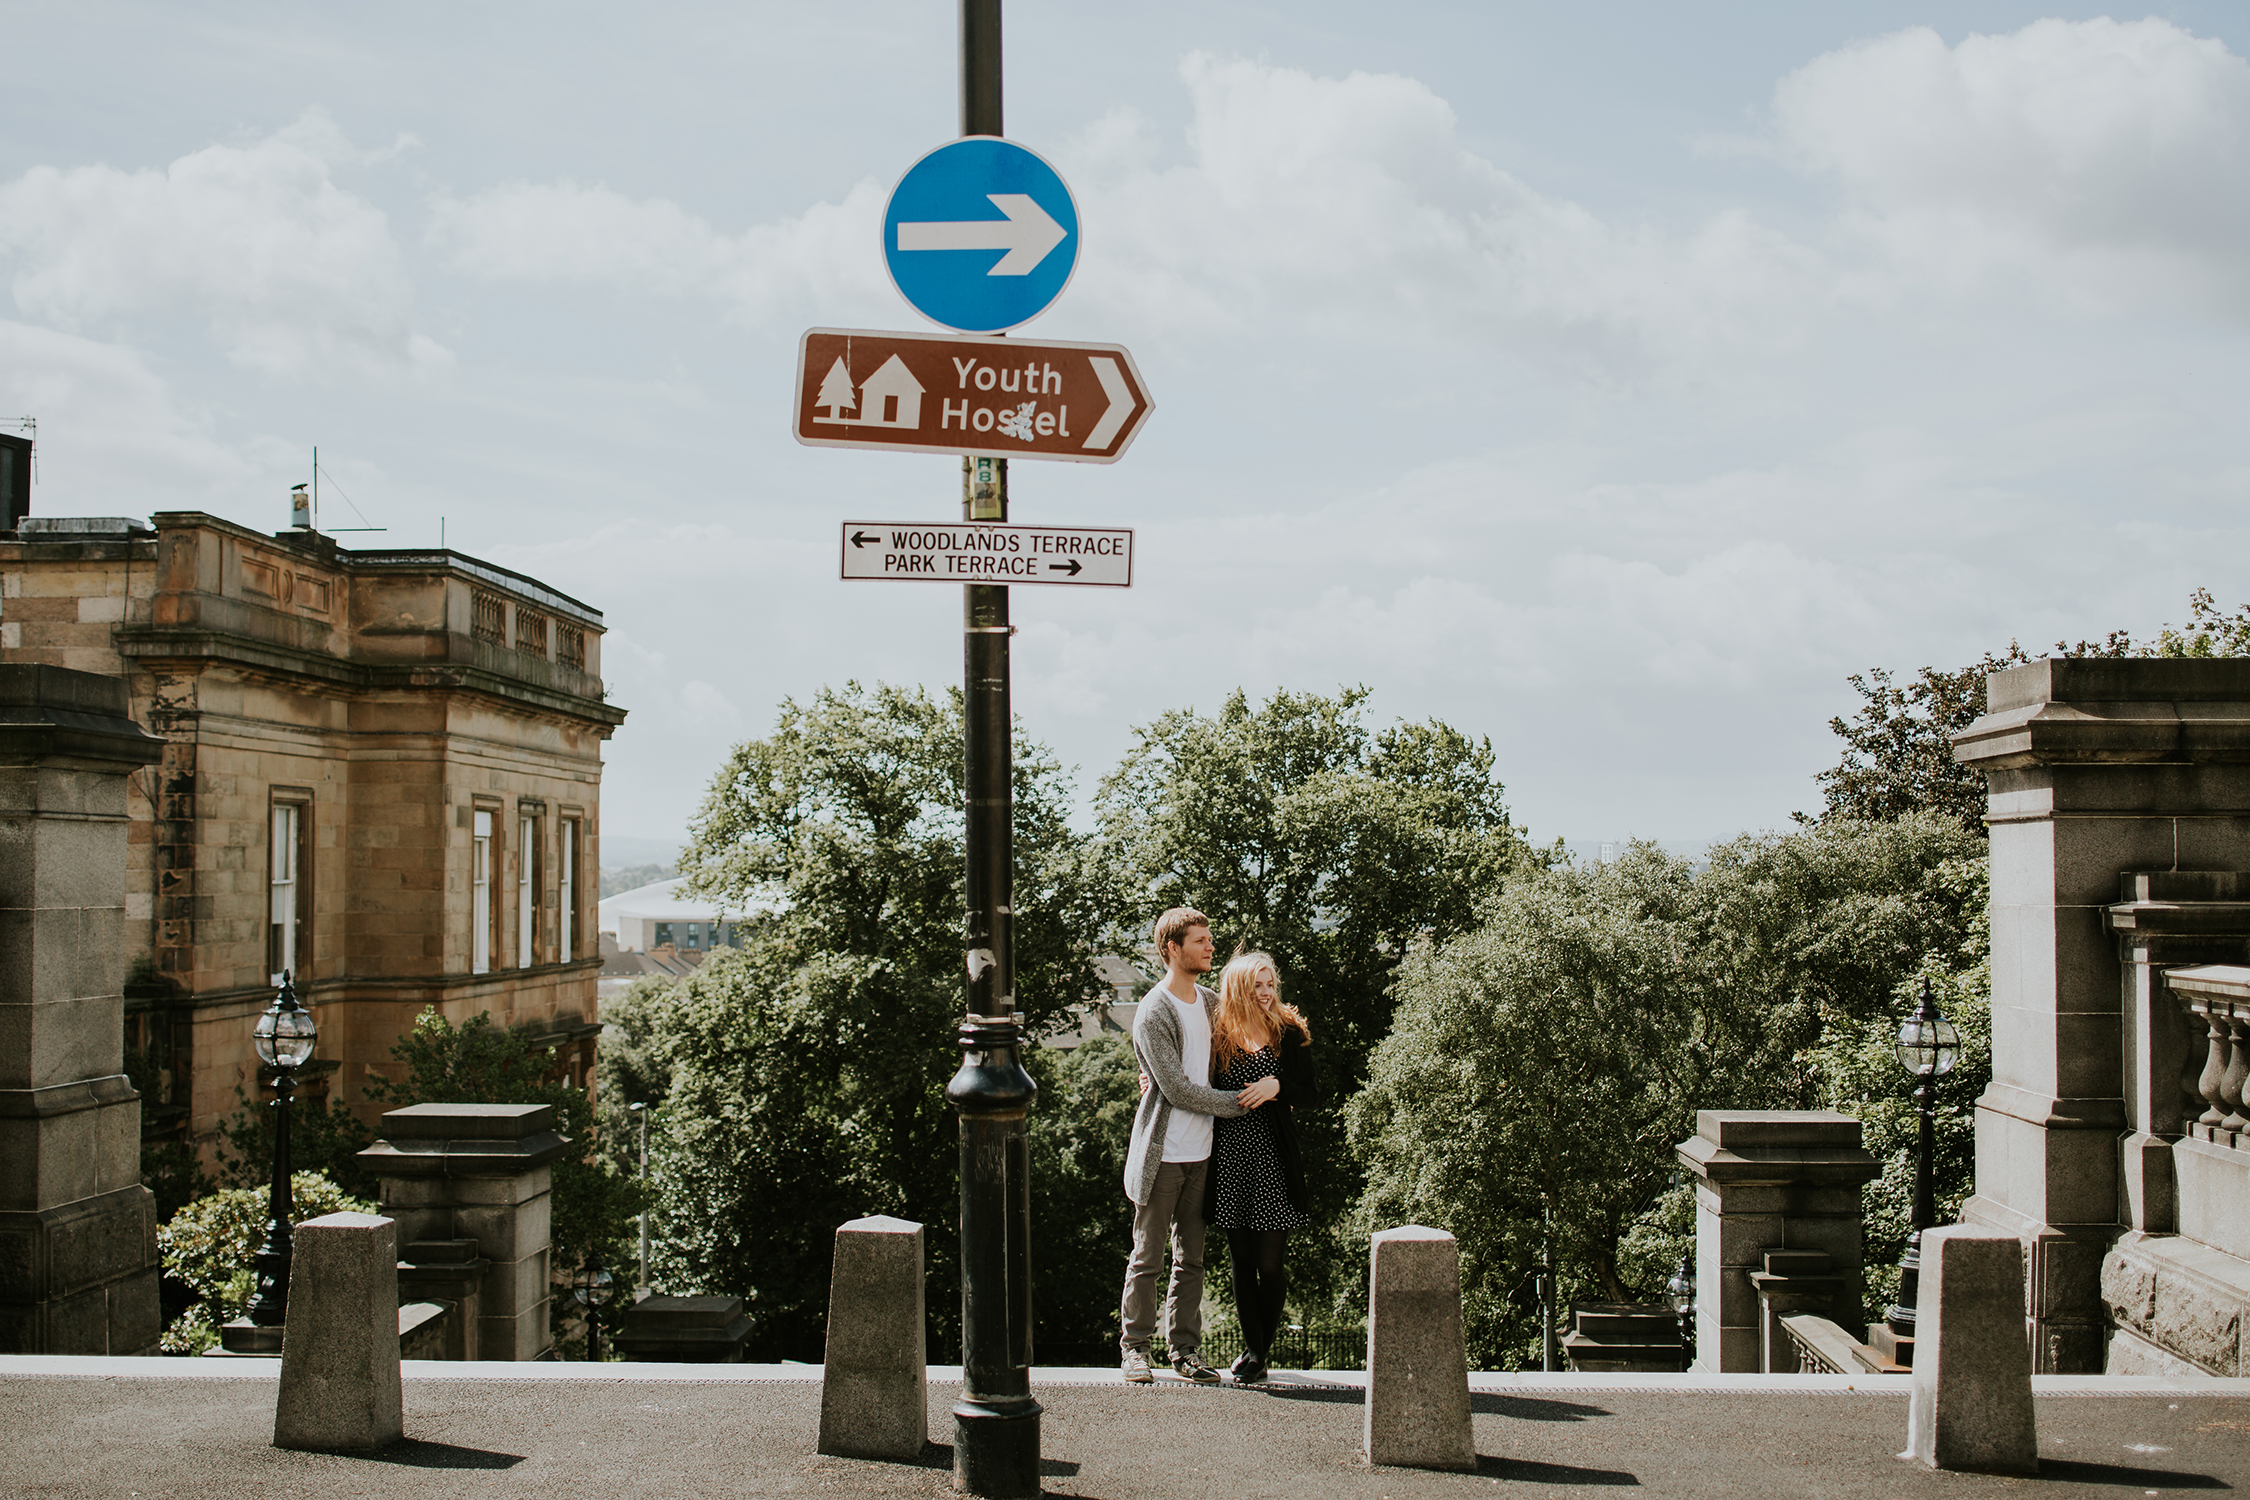 romantic_city_elopement_glasgow_edinburgh_wedding_photographer_31